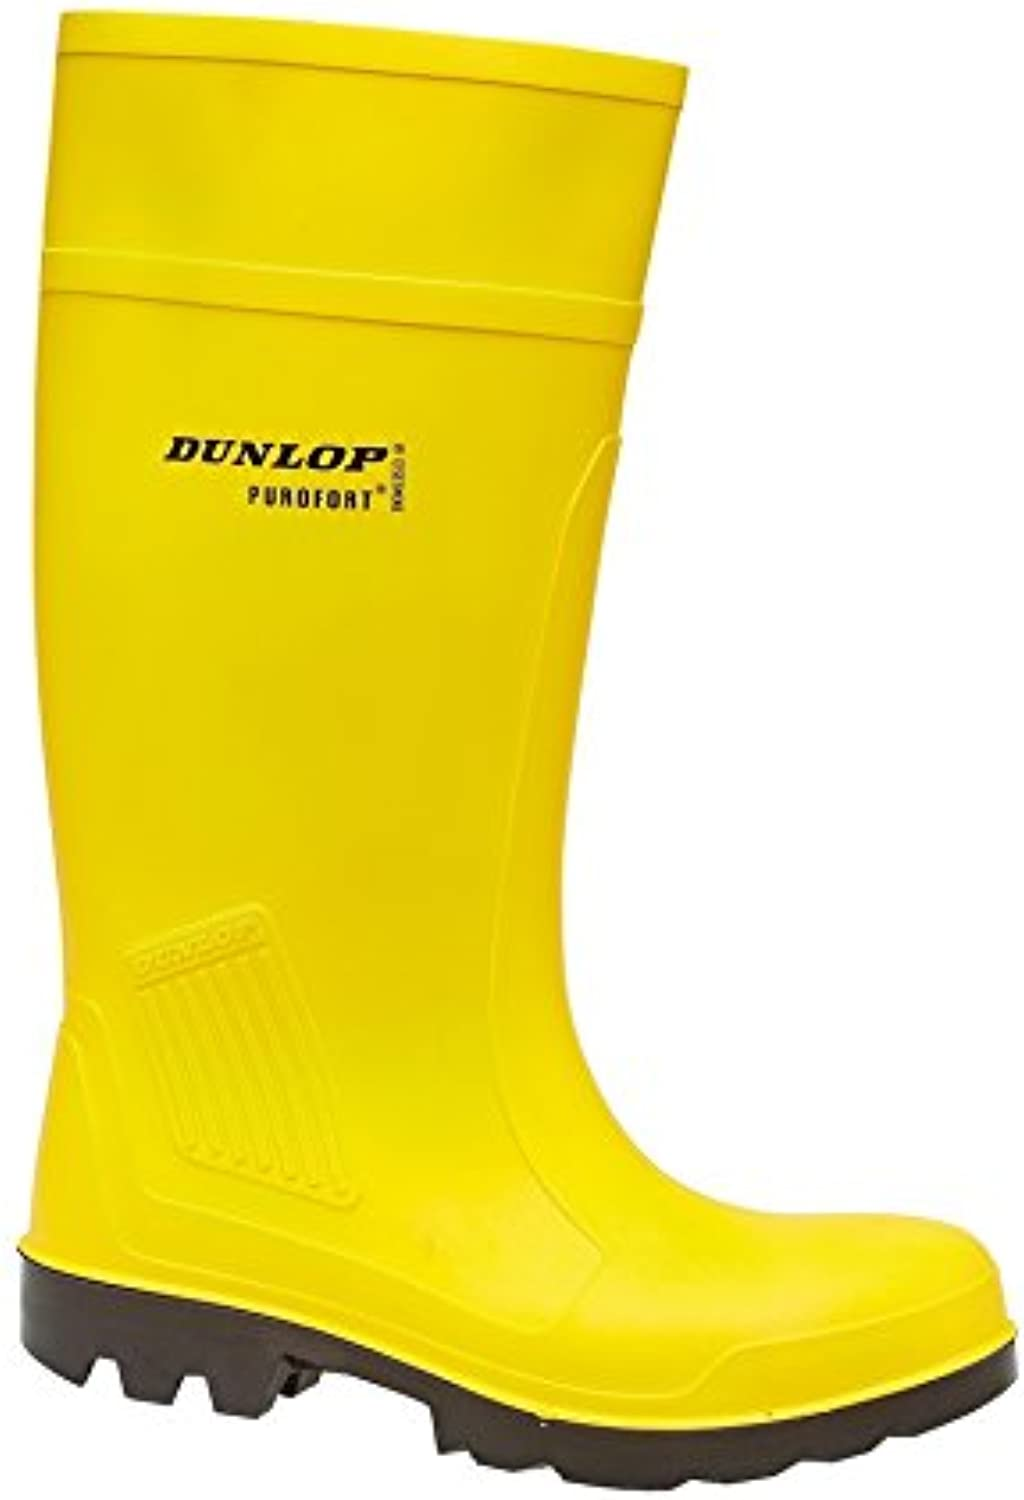 Dunlop Slip-On Self-Lined Wellingtons - Yellow - Size 39 40 41 42 43 44